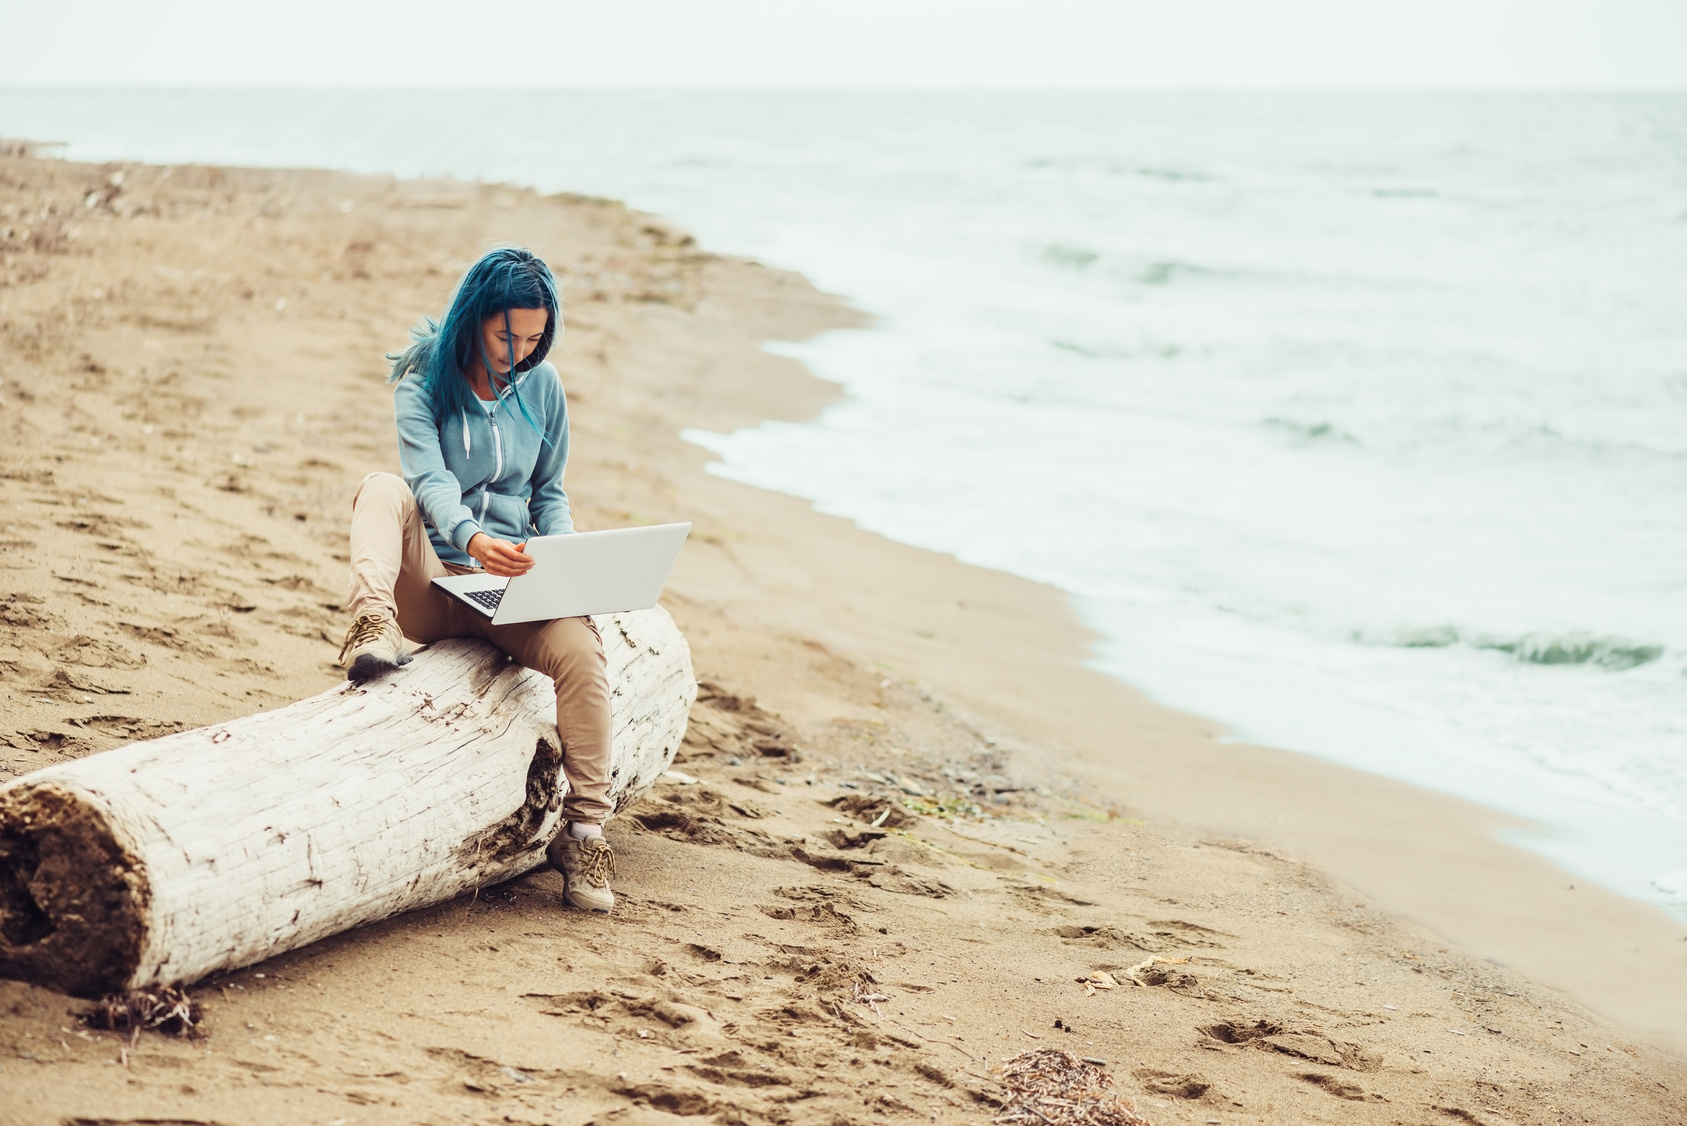 Freelancer young woman with blue hair sitting on tree trunk and working on laptop on sand beach near the sea. Freelance concept